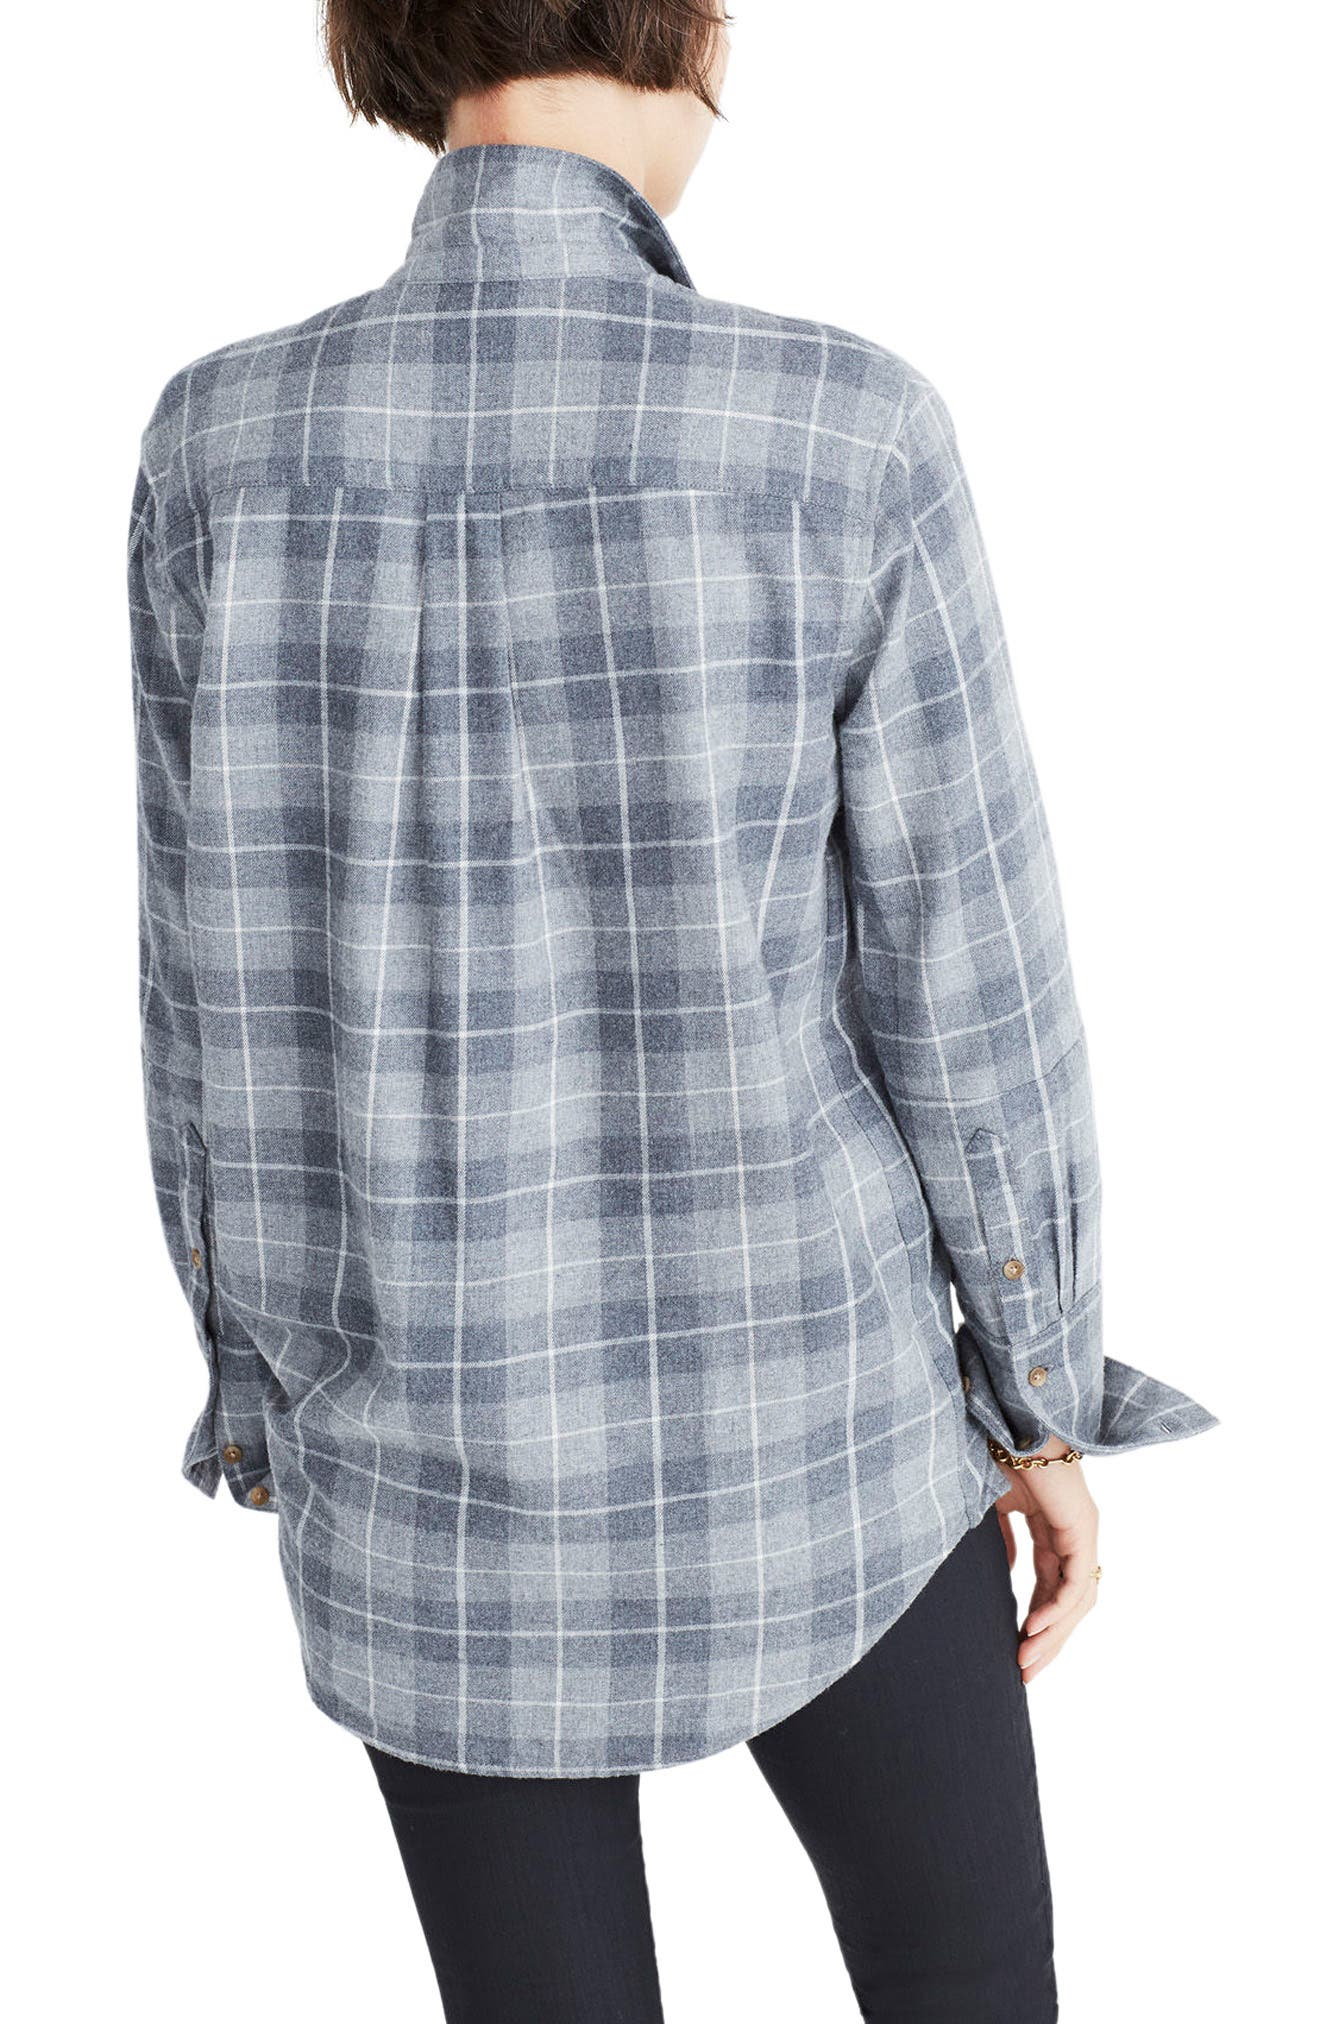 Bristol Plaid Flannel Shirt,                             Alternate thumbnail 2, color,                             020